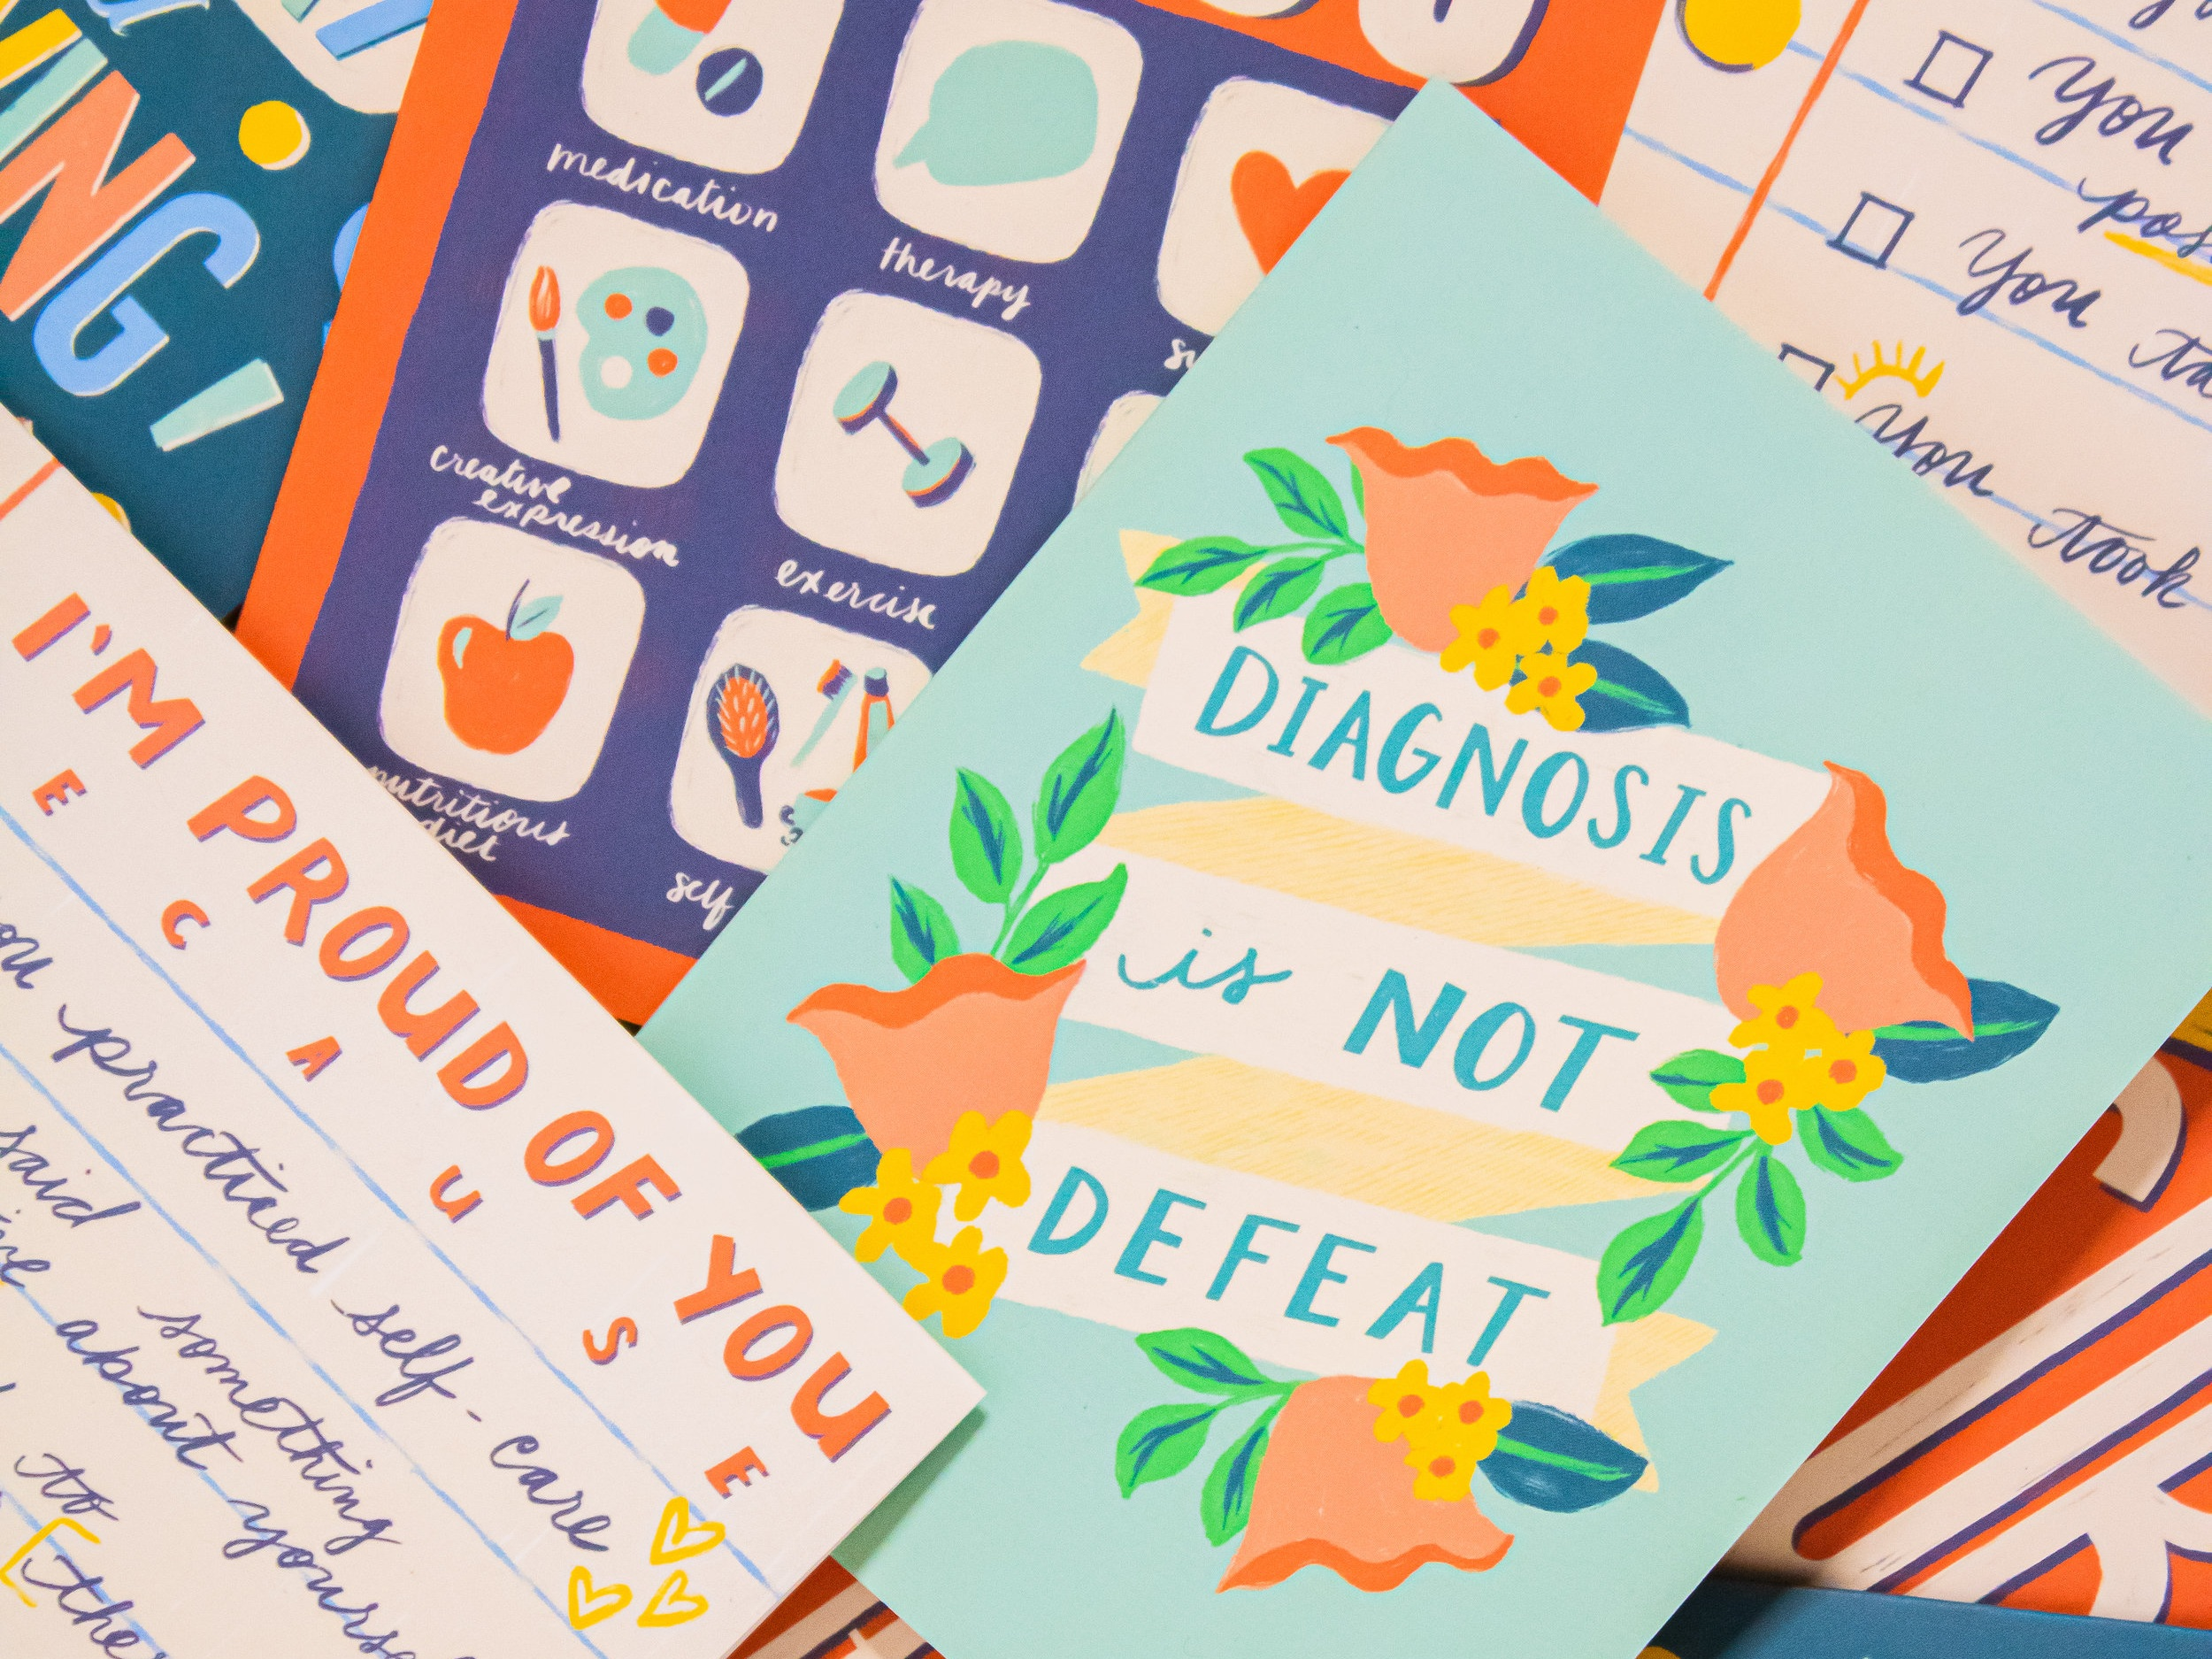 Mental Health Art and Greeting Cards